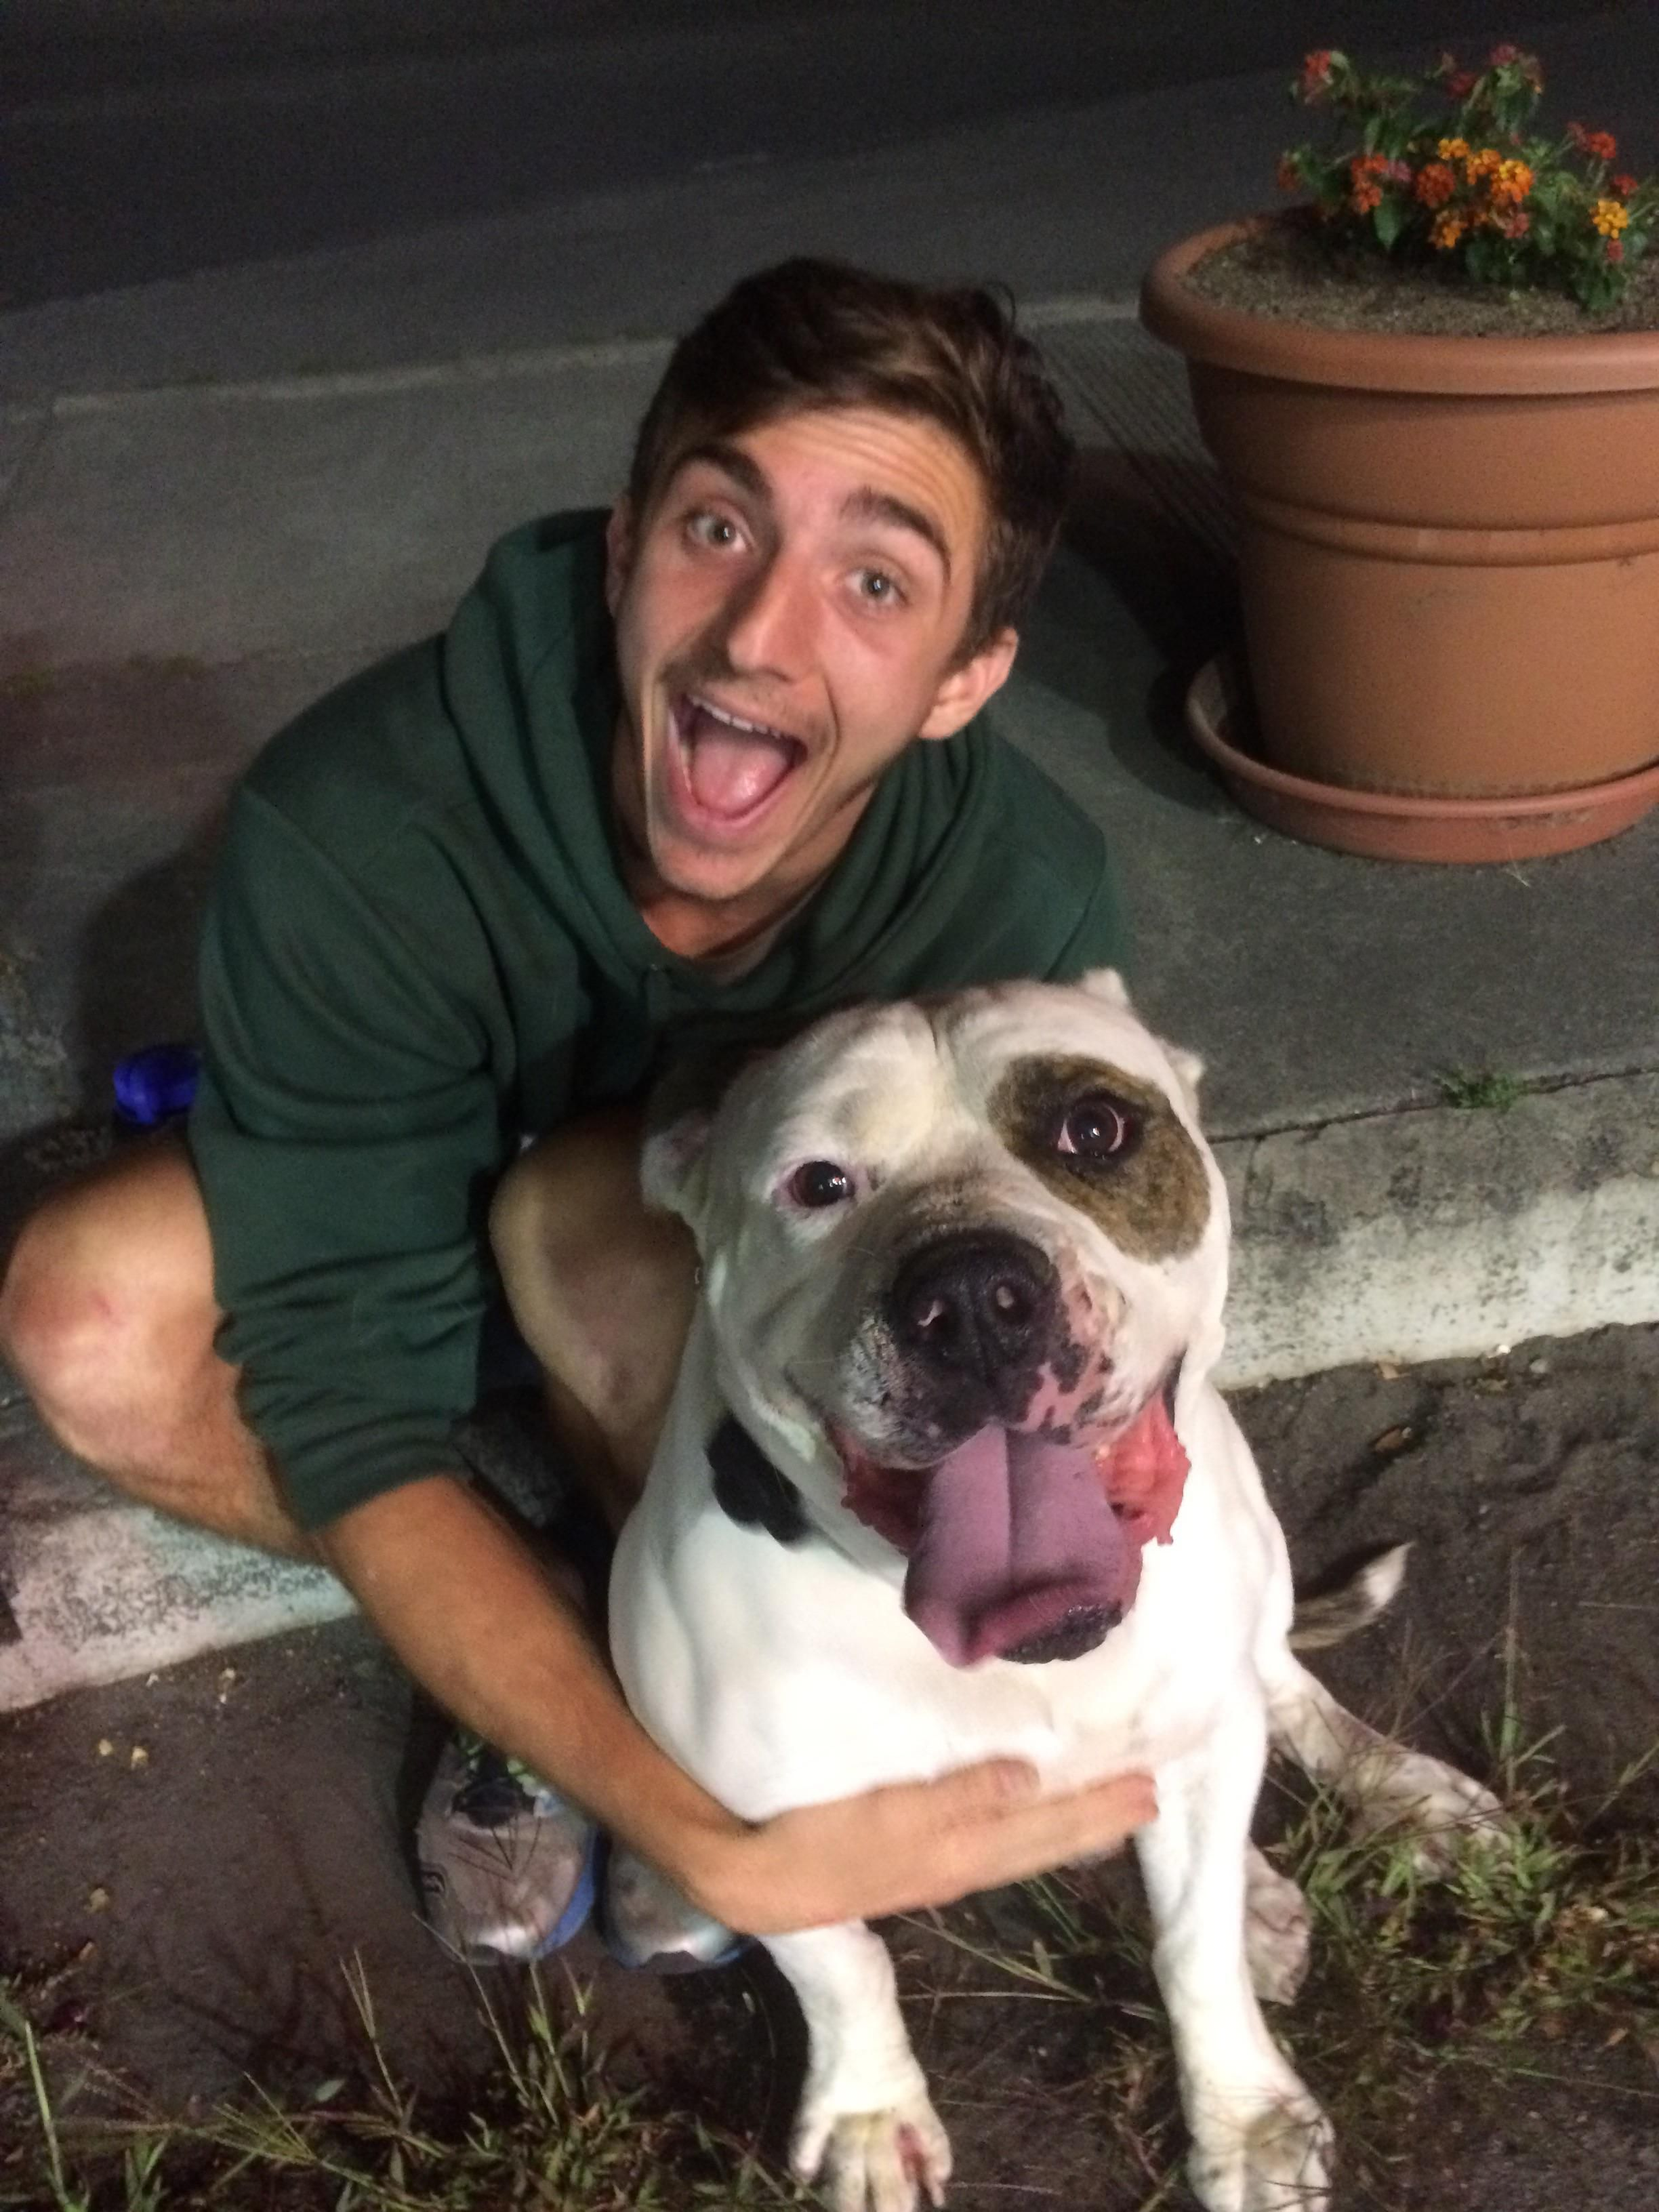 My brother and I found this dog without a tag and made sure his owner was found. Meatball 10/10 great boy! http://ift.tt/2tzAqZd